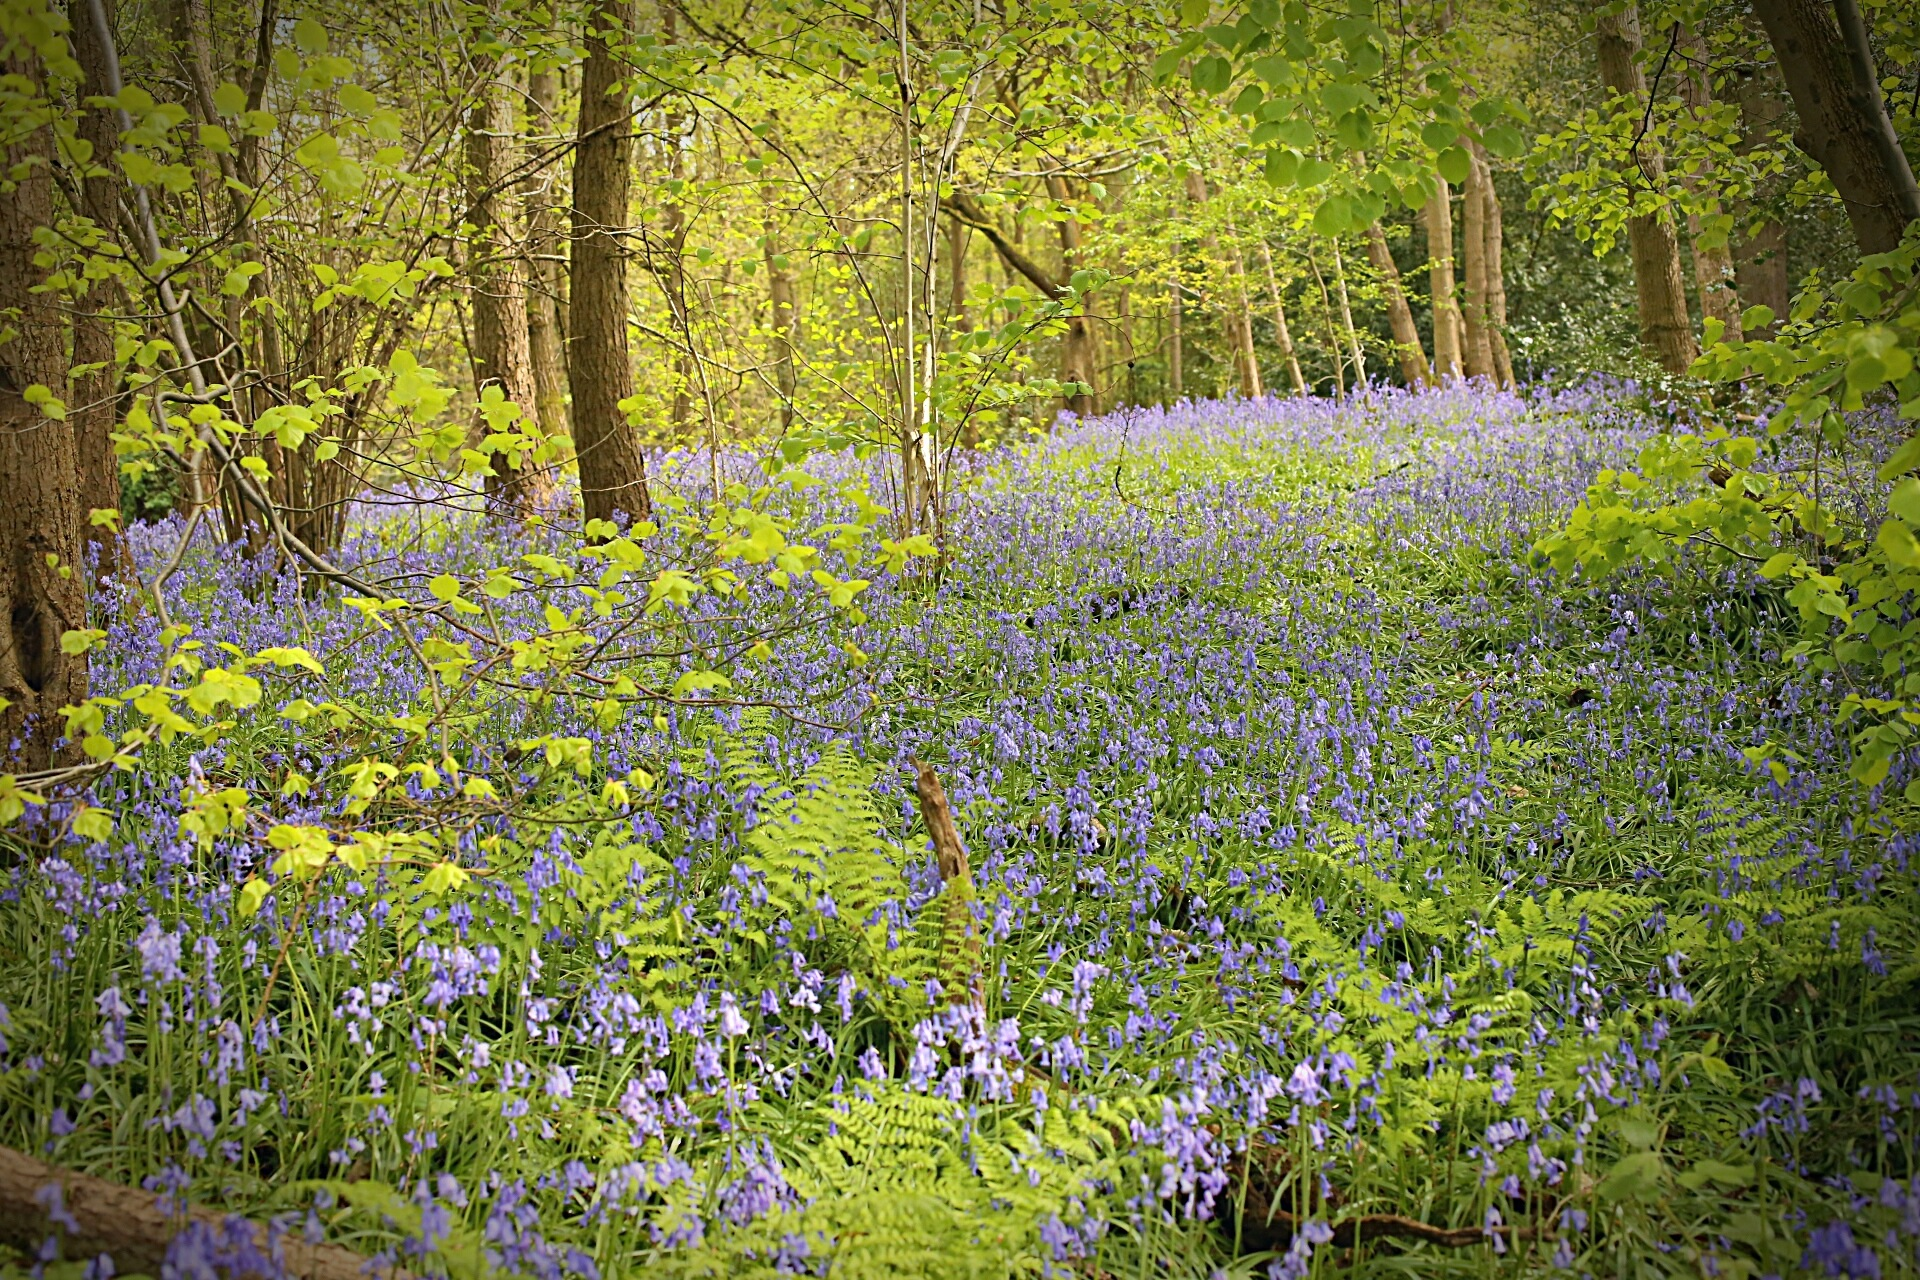 Blue Bell Woods by Yvonne Lewis